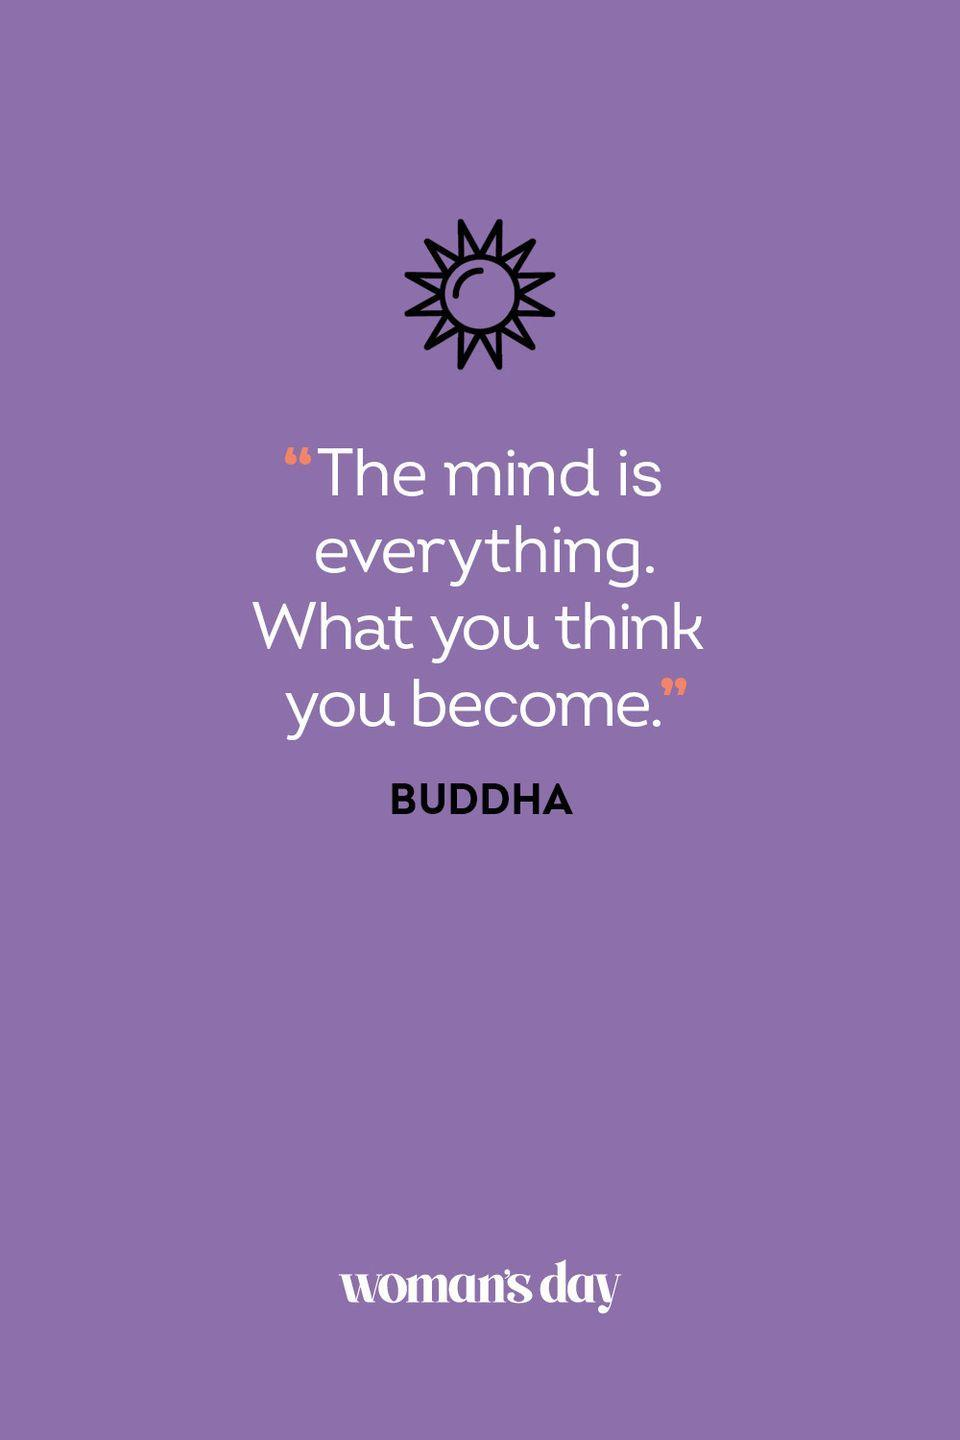 <p>The mind is everything. What you think you become.</p>